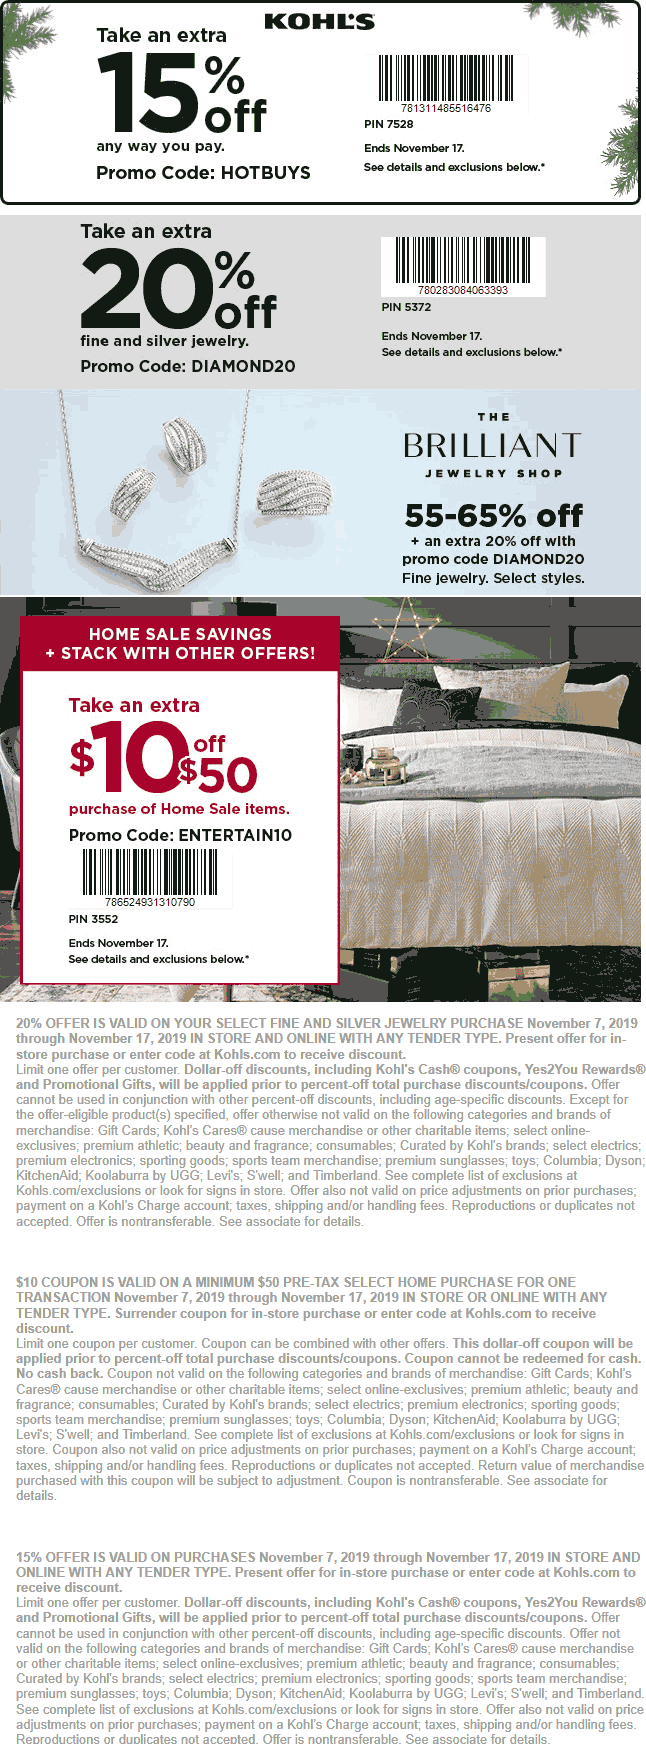 Kohls Coupon January 2020 15% off & more at Kohls, or online via promo code HOTBUYS